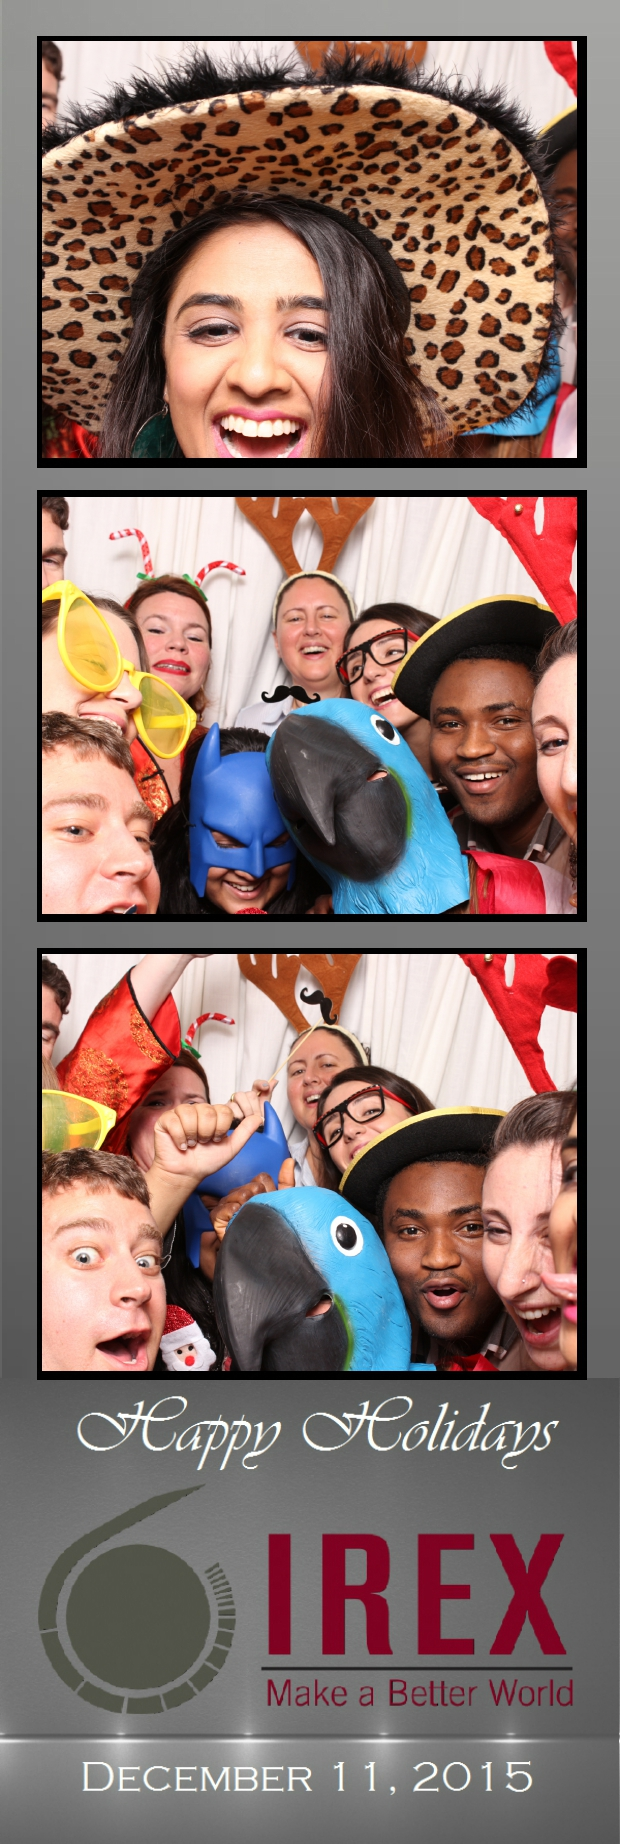 Guest House Events Photo Booth Strips IREX (46).jpg